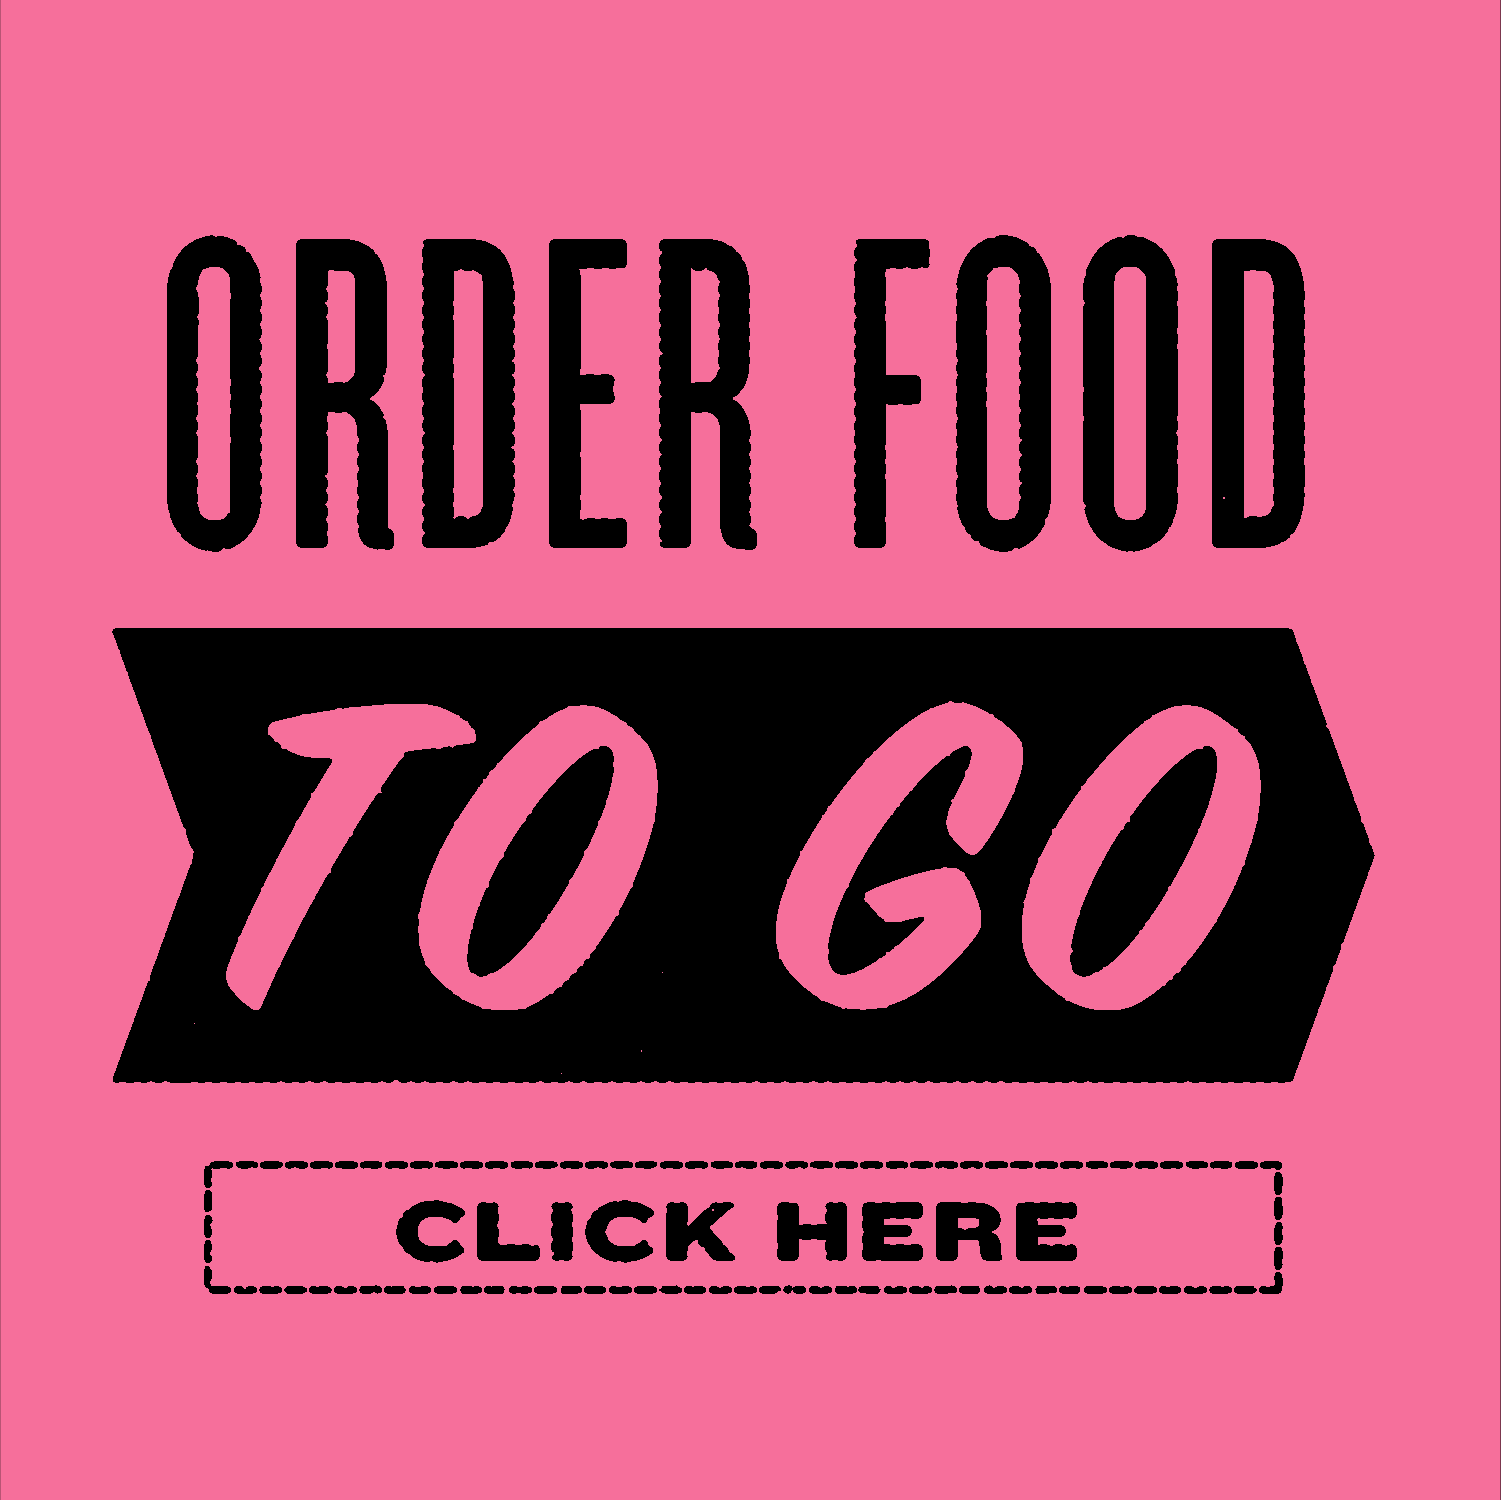 Wedgehead order takeout food graphic